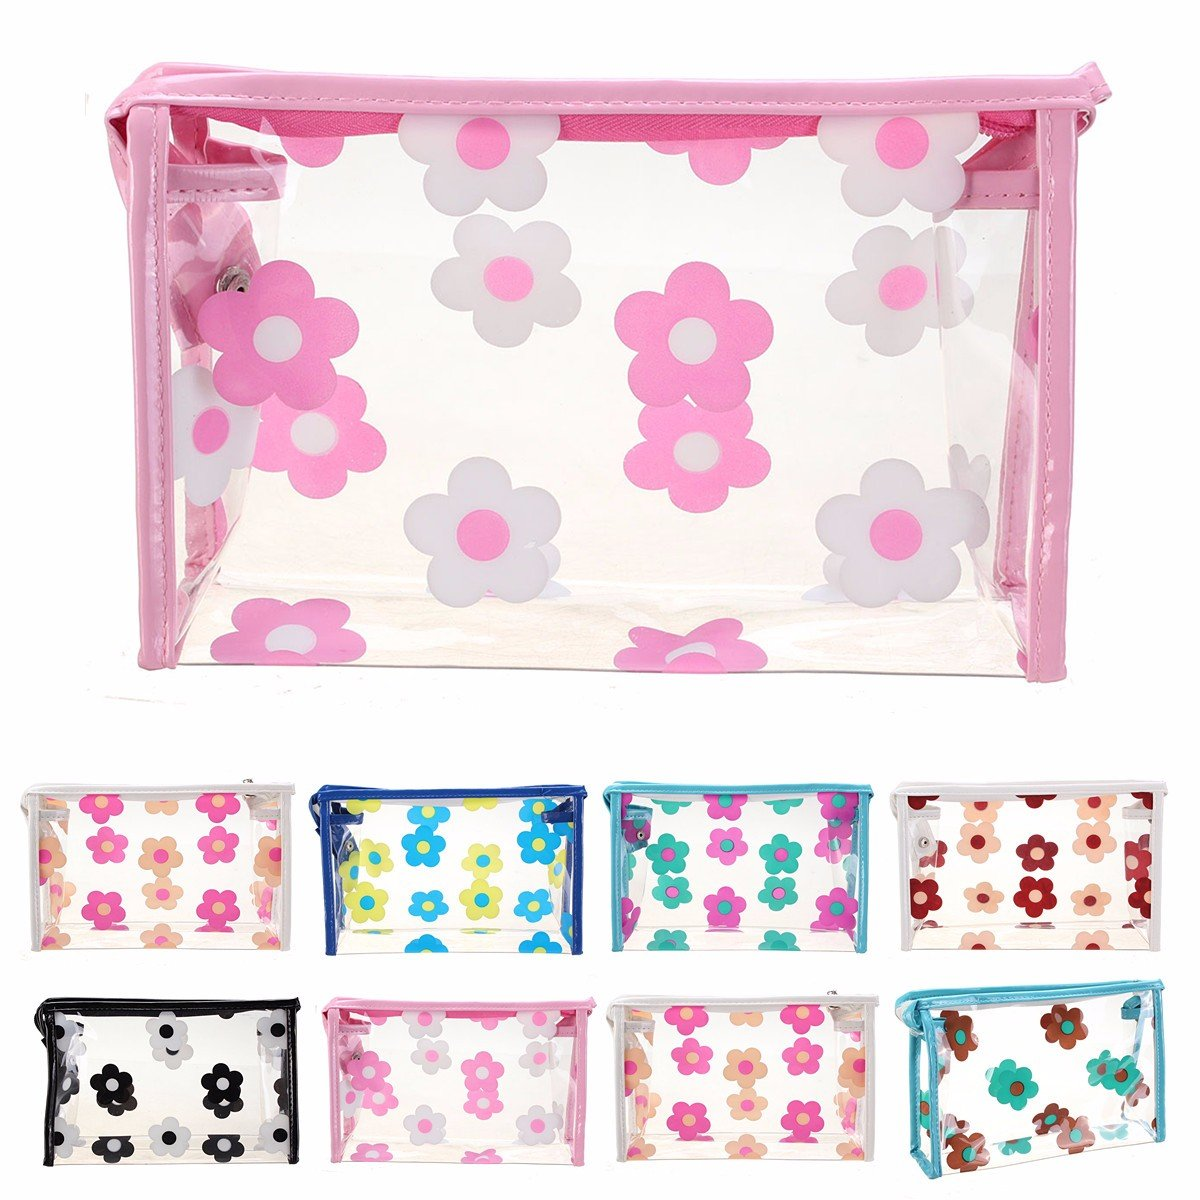 Transparent Flowers Waterproof Makeup Bag PVC Travel Zipper Case